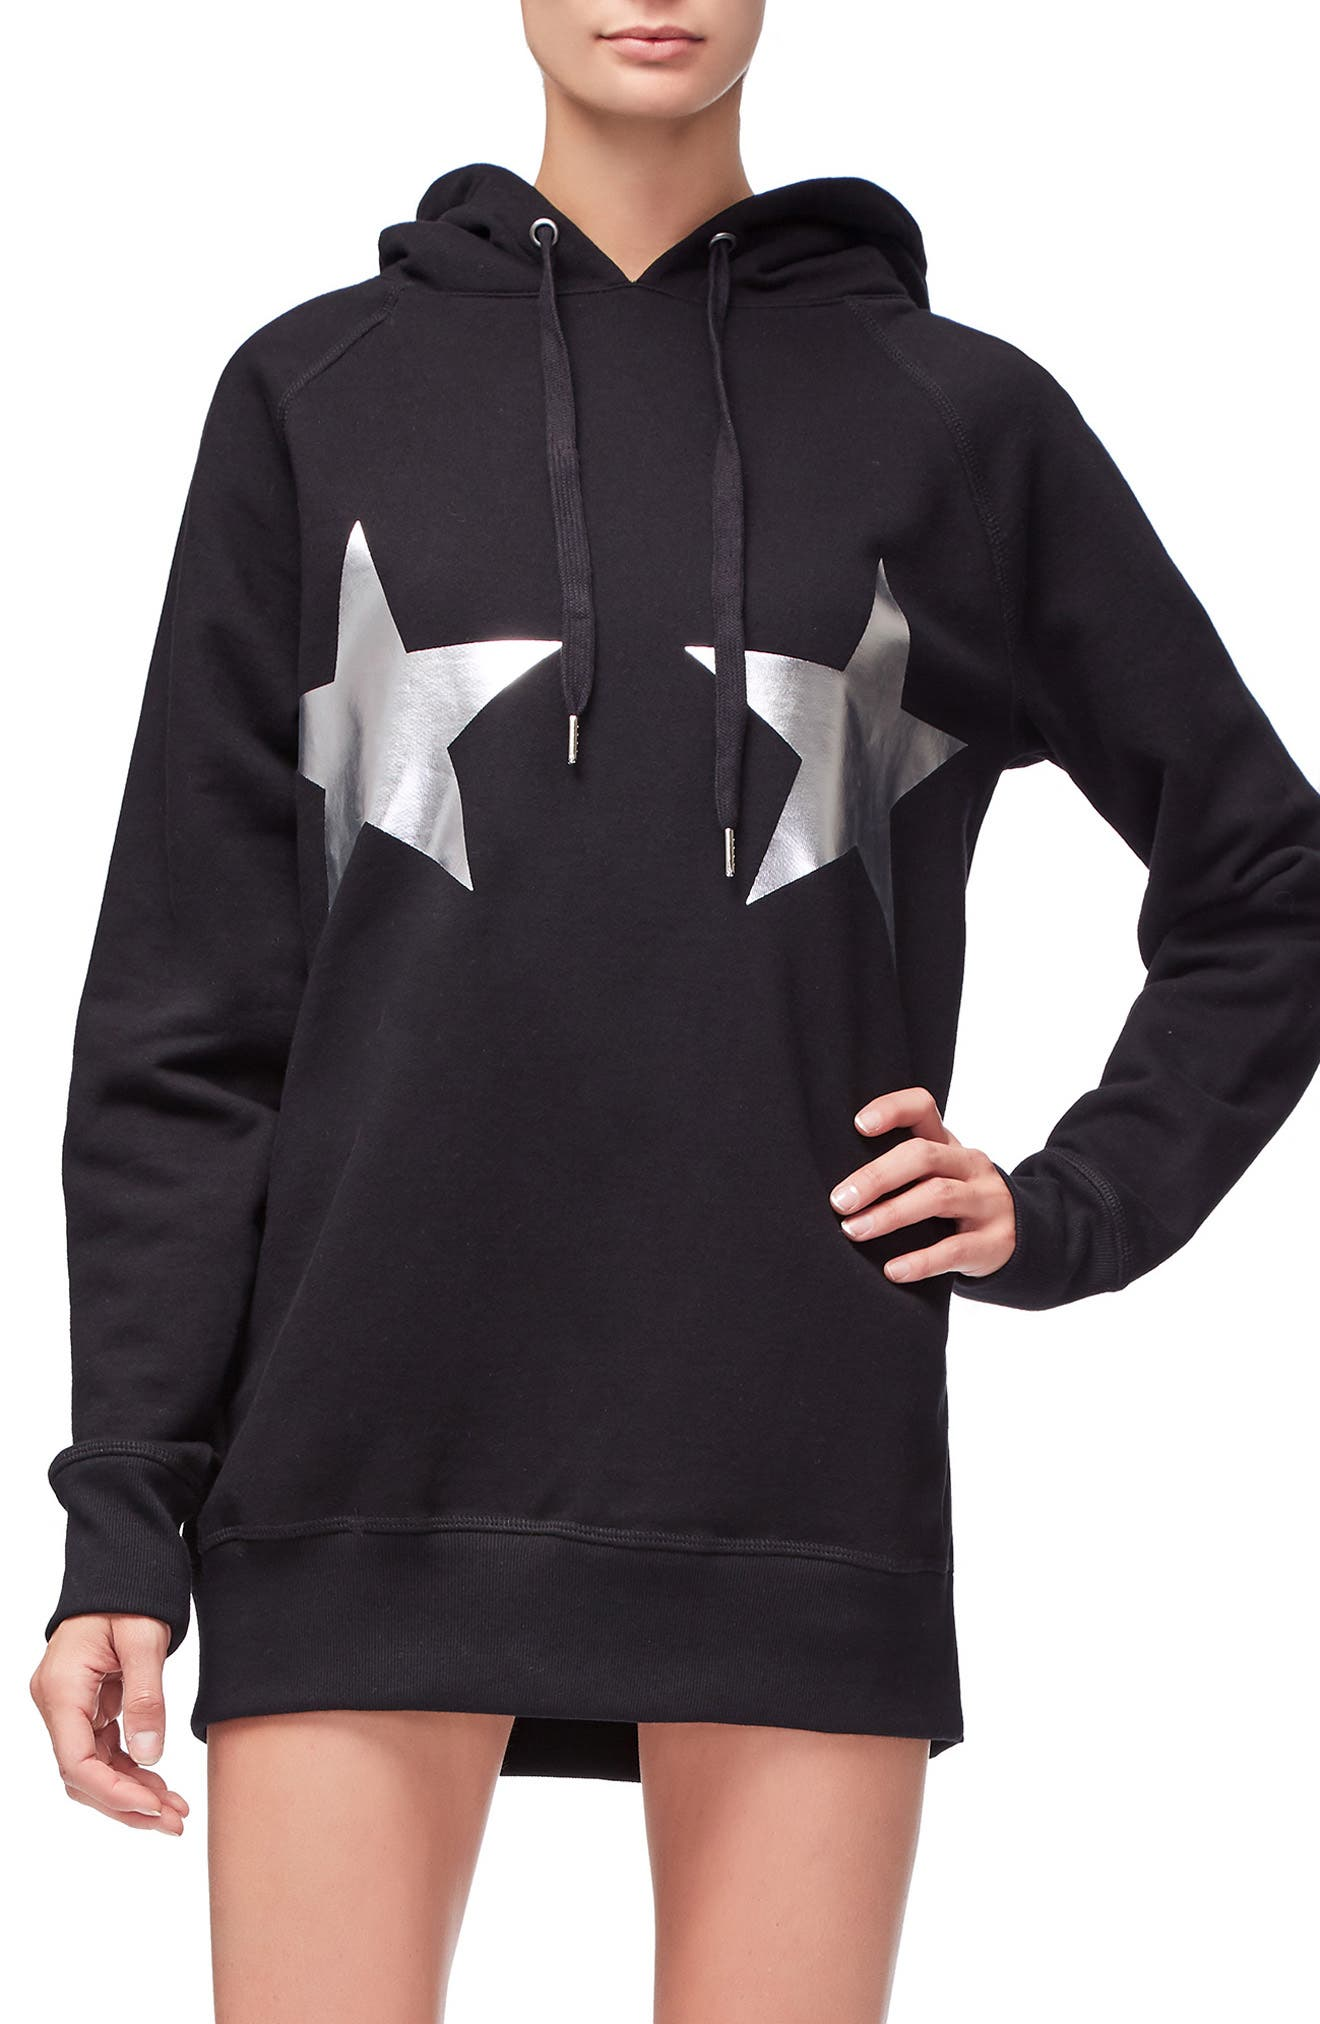 Goodies Stars & Stripes Hoodie,                             Main thumbnail 1, color,                             BLACK